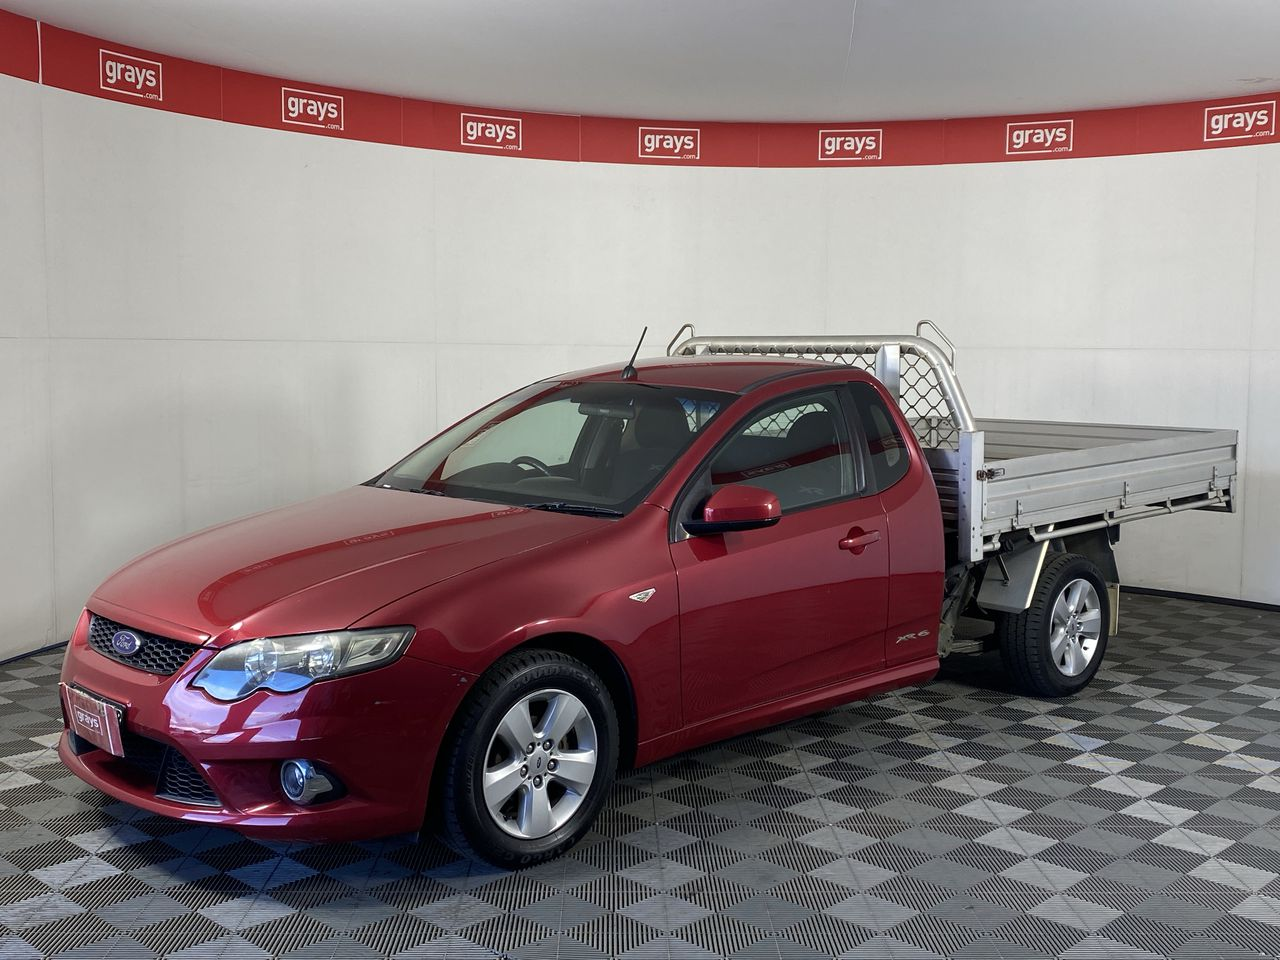 2010 Ford Falcon XR6 (LPG) FG Automatic Cab Chassis